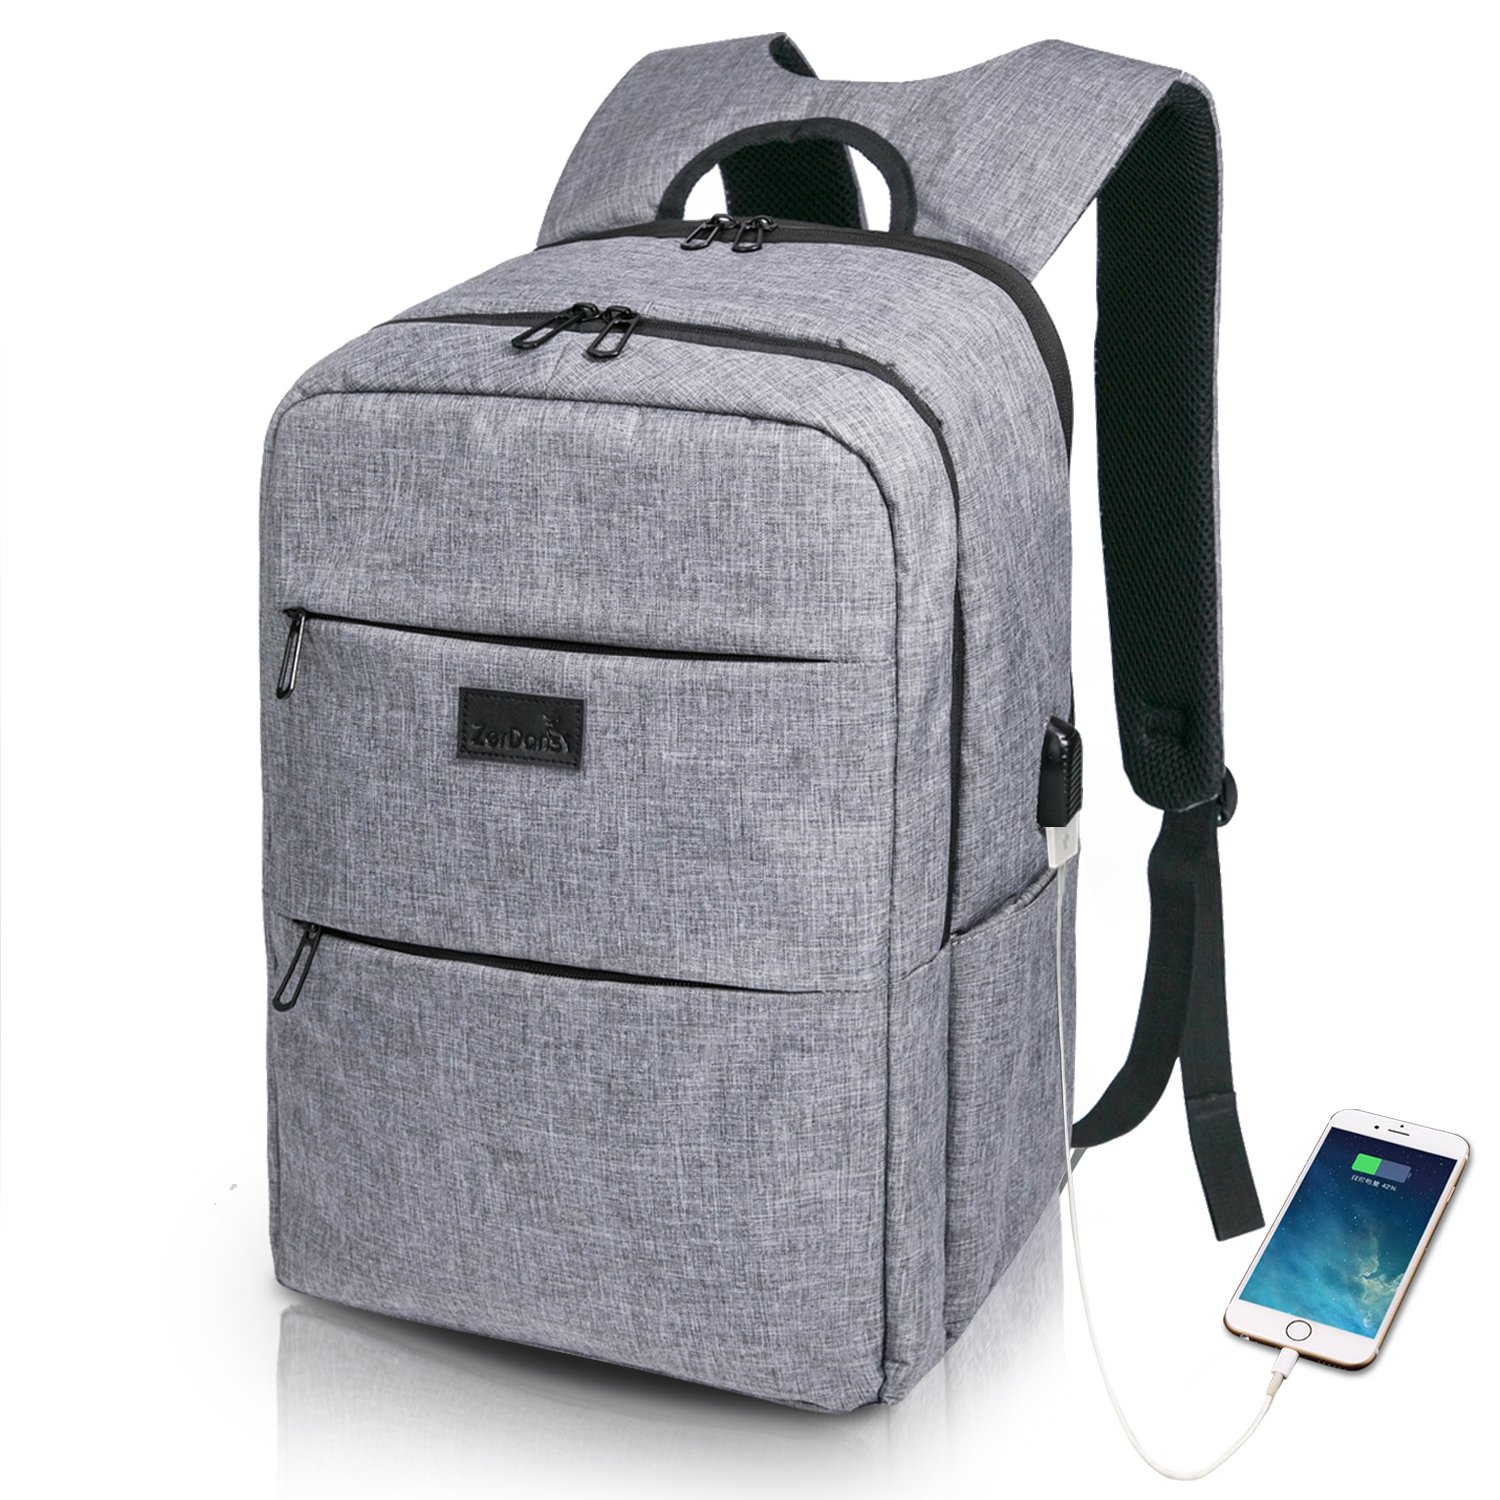 Laptop Backpack Travel Anti Theft Business Backpack for Men & Women, Lightweight Water Resistant Computer Bag College School Bookbag with USB Charging Port, Fits Under 17 Inch Laptop Notebook